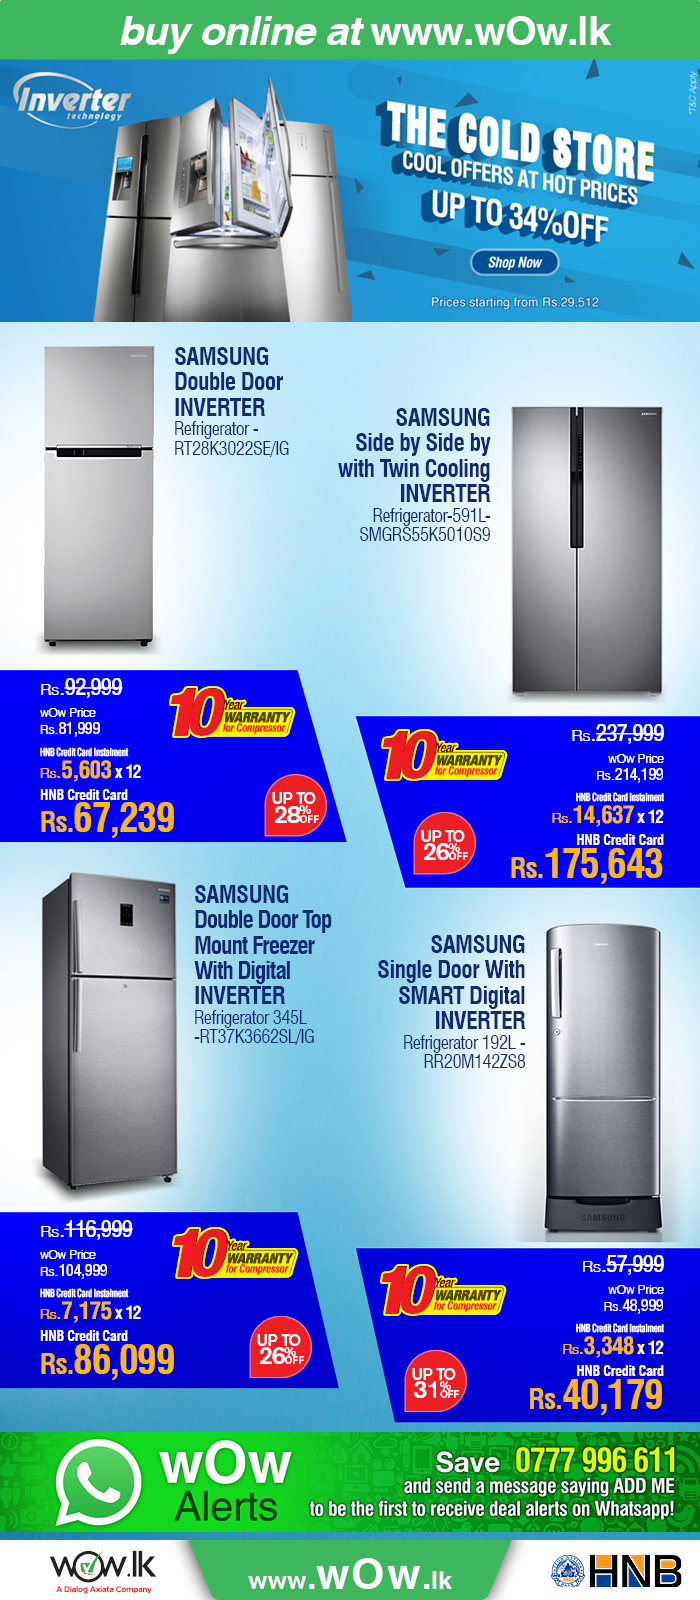 http://www.wow.lk/mall/buyonline/home-appliances-refrigerators/?Ns=sku.inventoryAvailability%7C0&utm_source=dailymail&utm_medium=newsletter&utm_campaign=fridgesalethematic